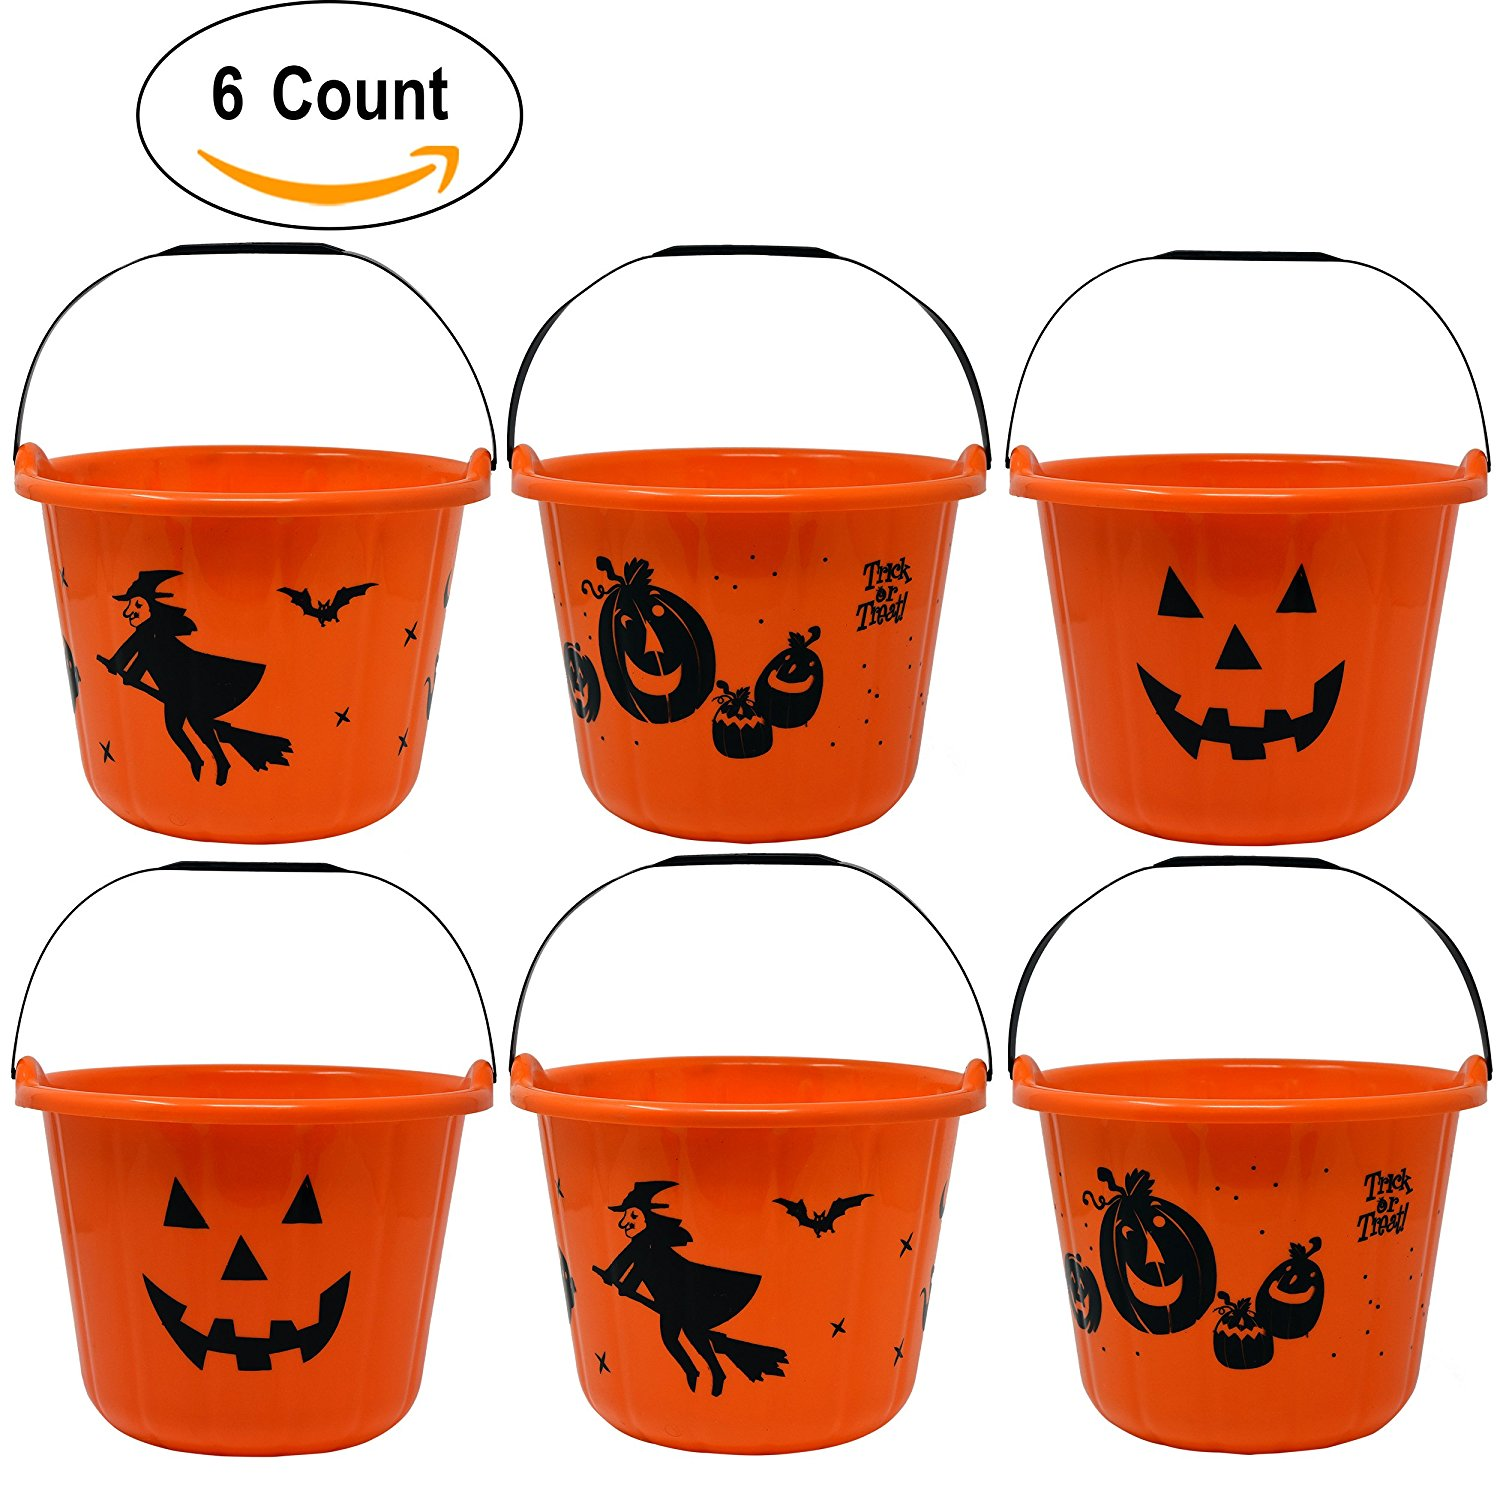 "6 Pack Halloween Candy Bucket 9"" Diameter 7"" High with Handles Large Plastic Jack O Lantern Pumpkin Trick Or Treat Pails Holder For Toys Sweet Treats Goody Favors"